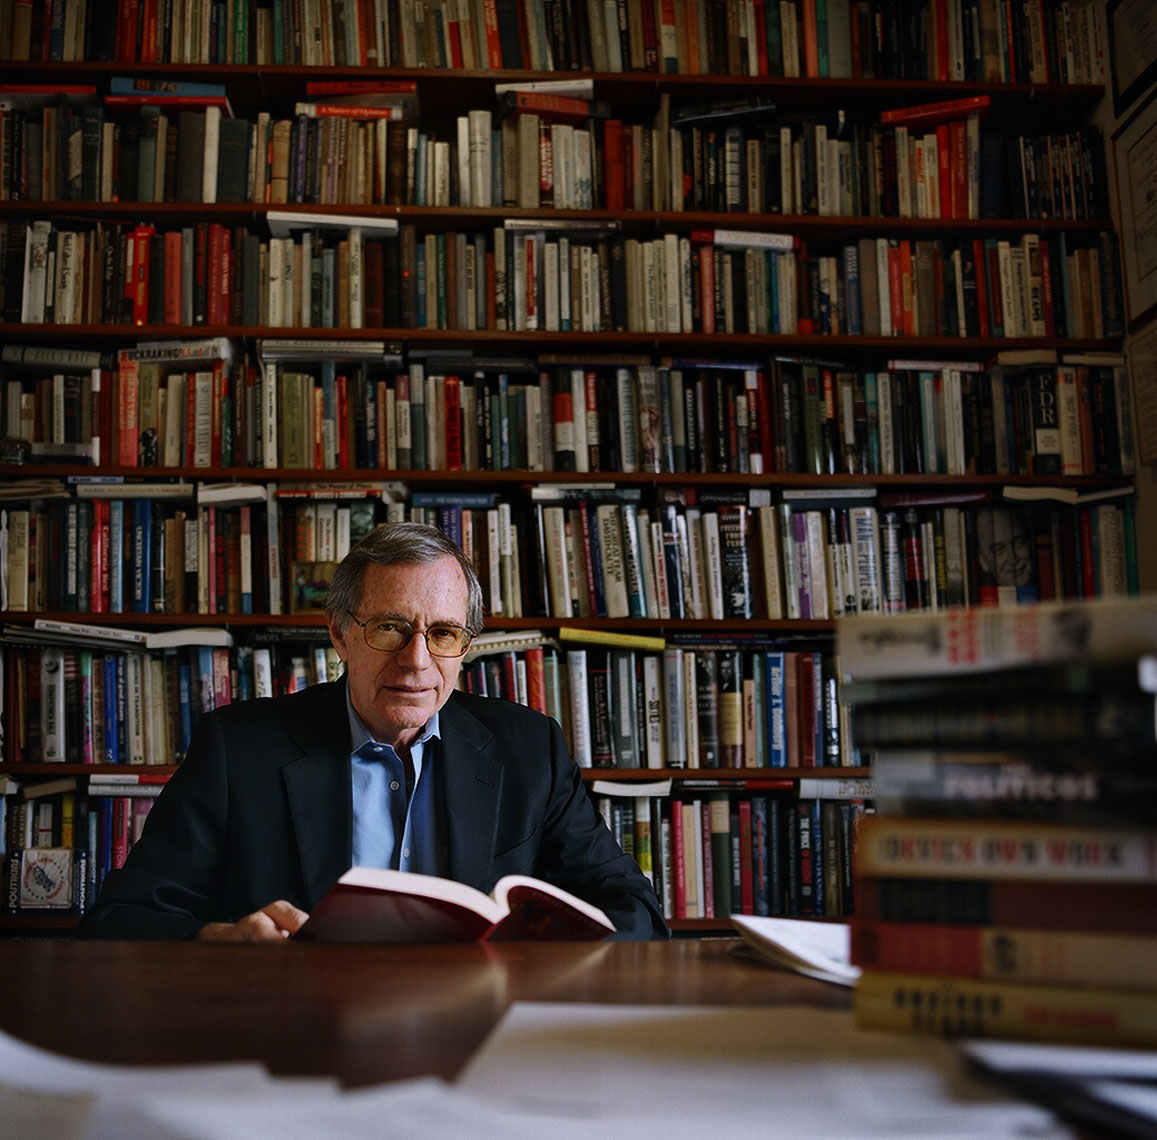 Eric Foner by PETER LueDERS